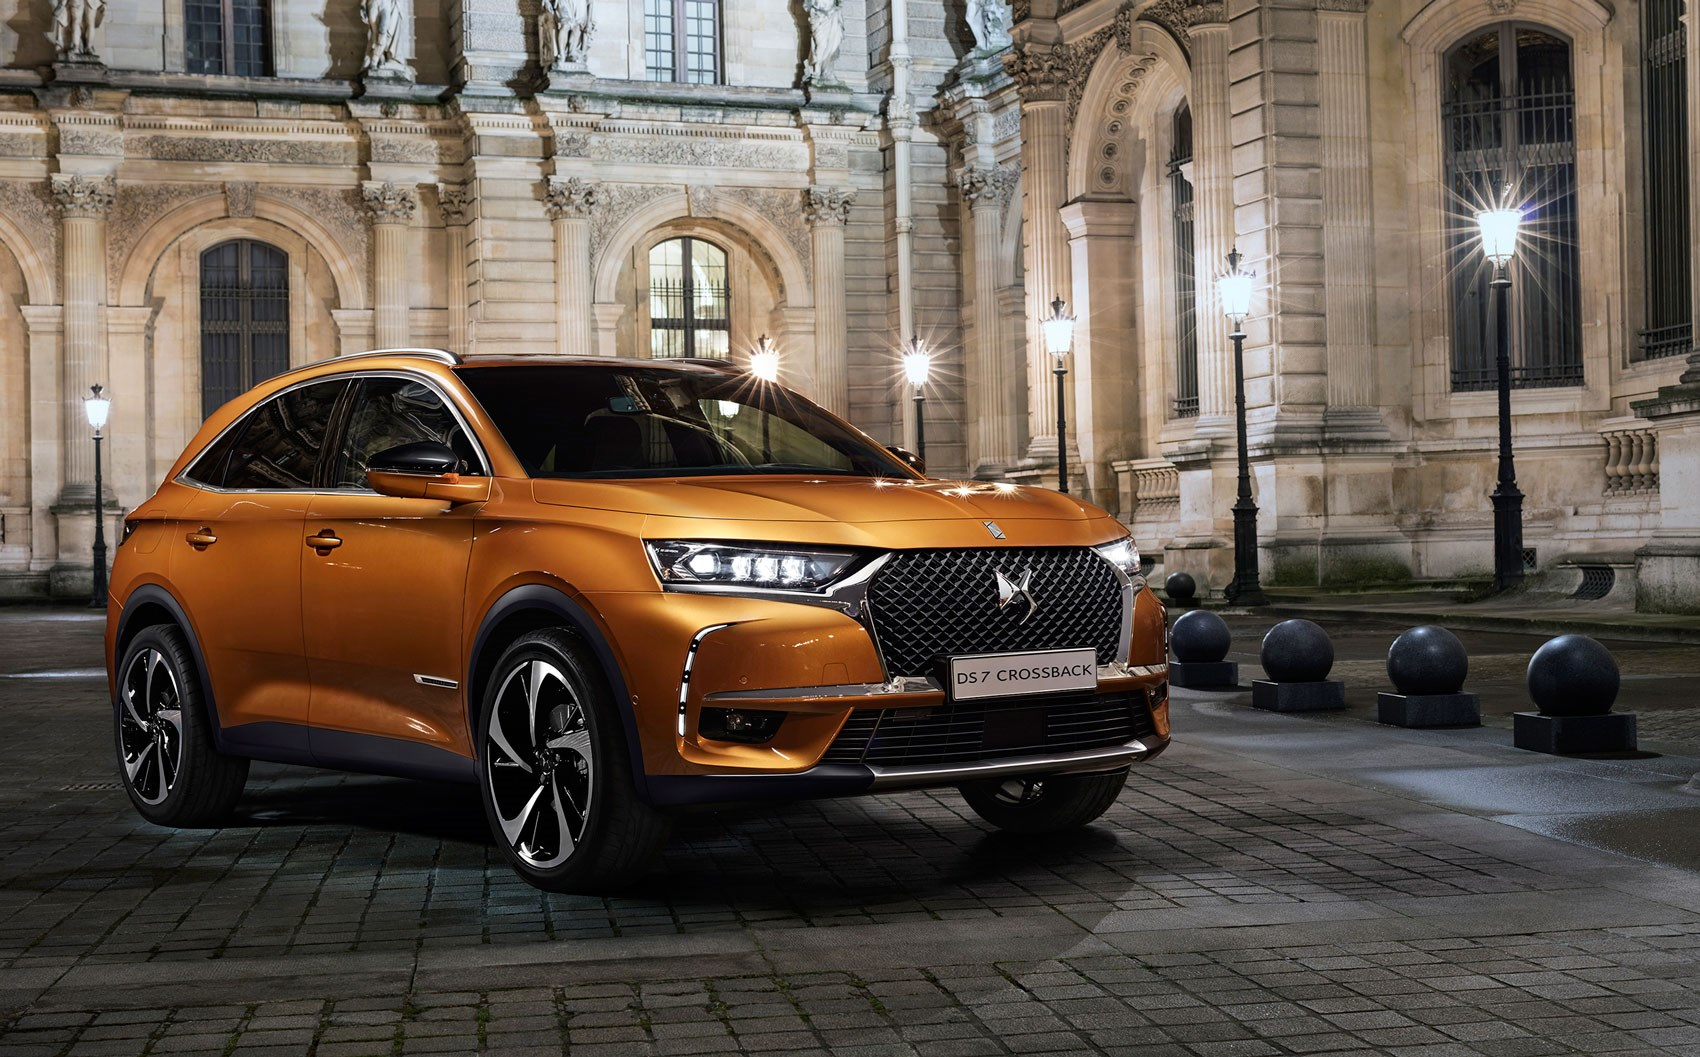 Ds7 Crossback Suv New French President Macron Has First Dibs By Car Magazine